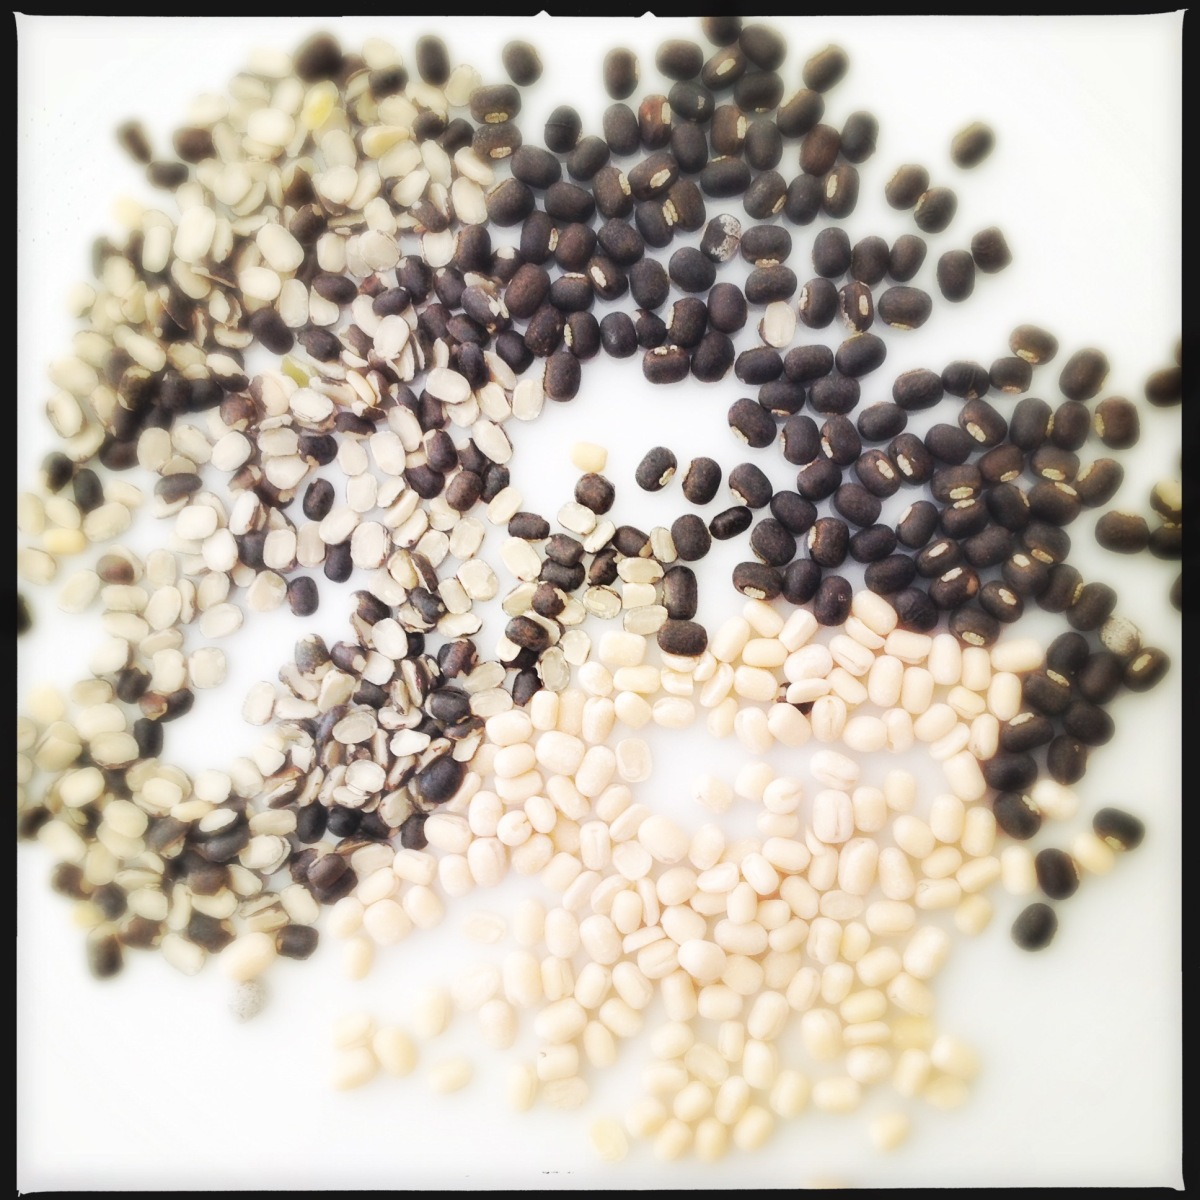 Indian Essentials: What are Urad Lentils? What is Black Gram?